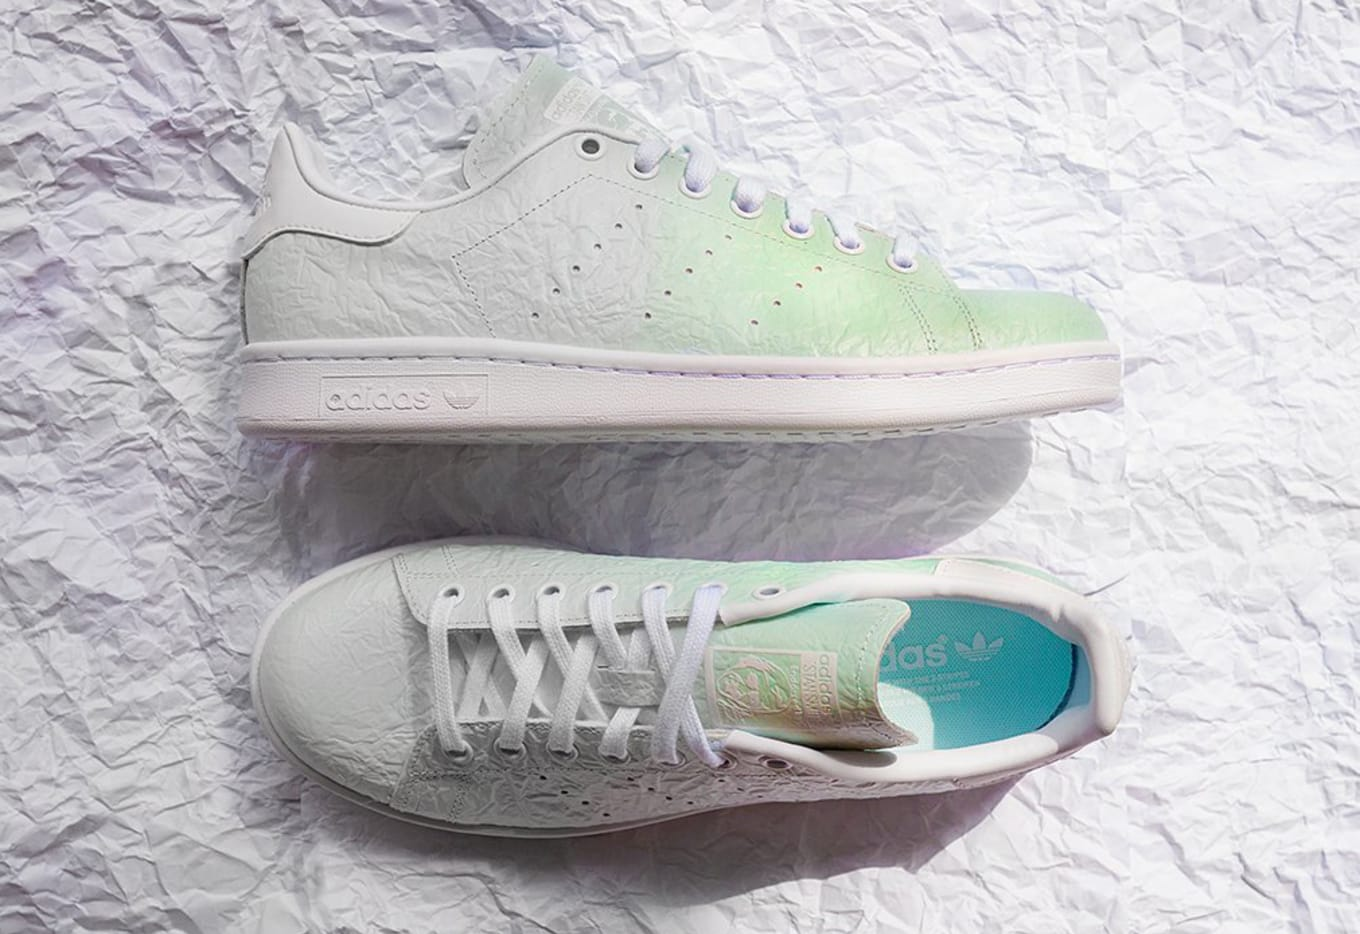 3092b693e5f24 These Adidas Change Colors. A Stan Smith release with UV-activated leather.